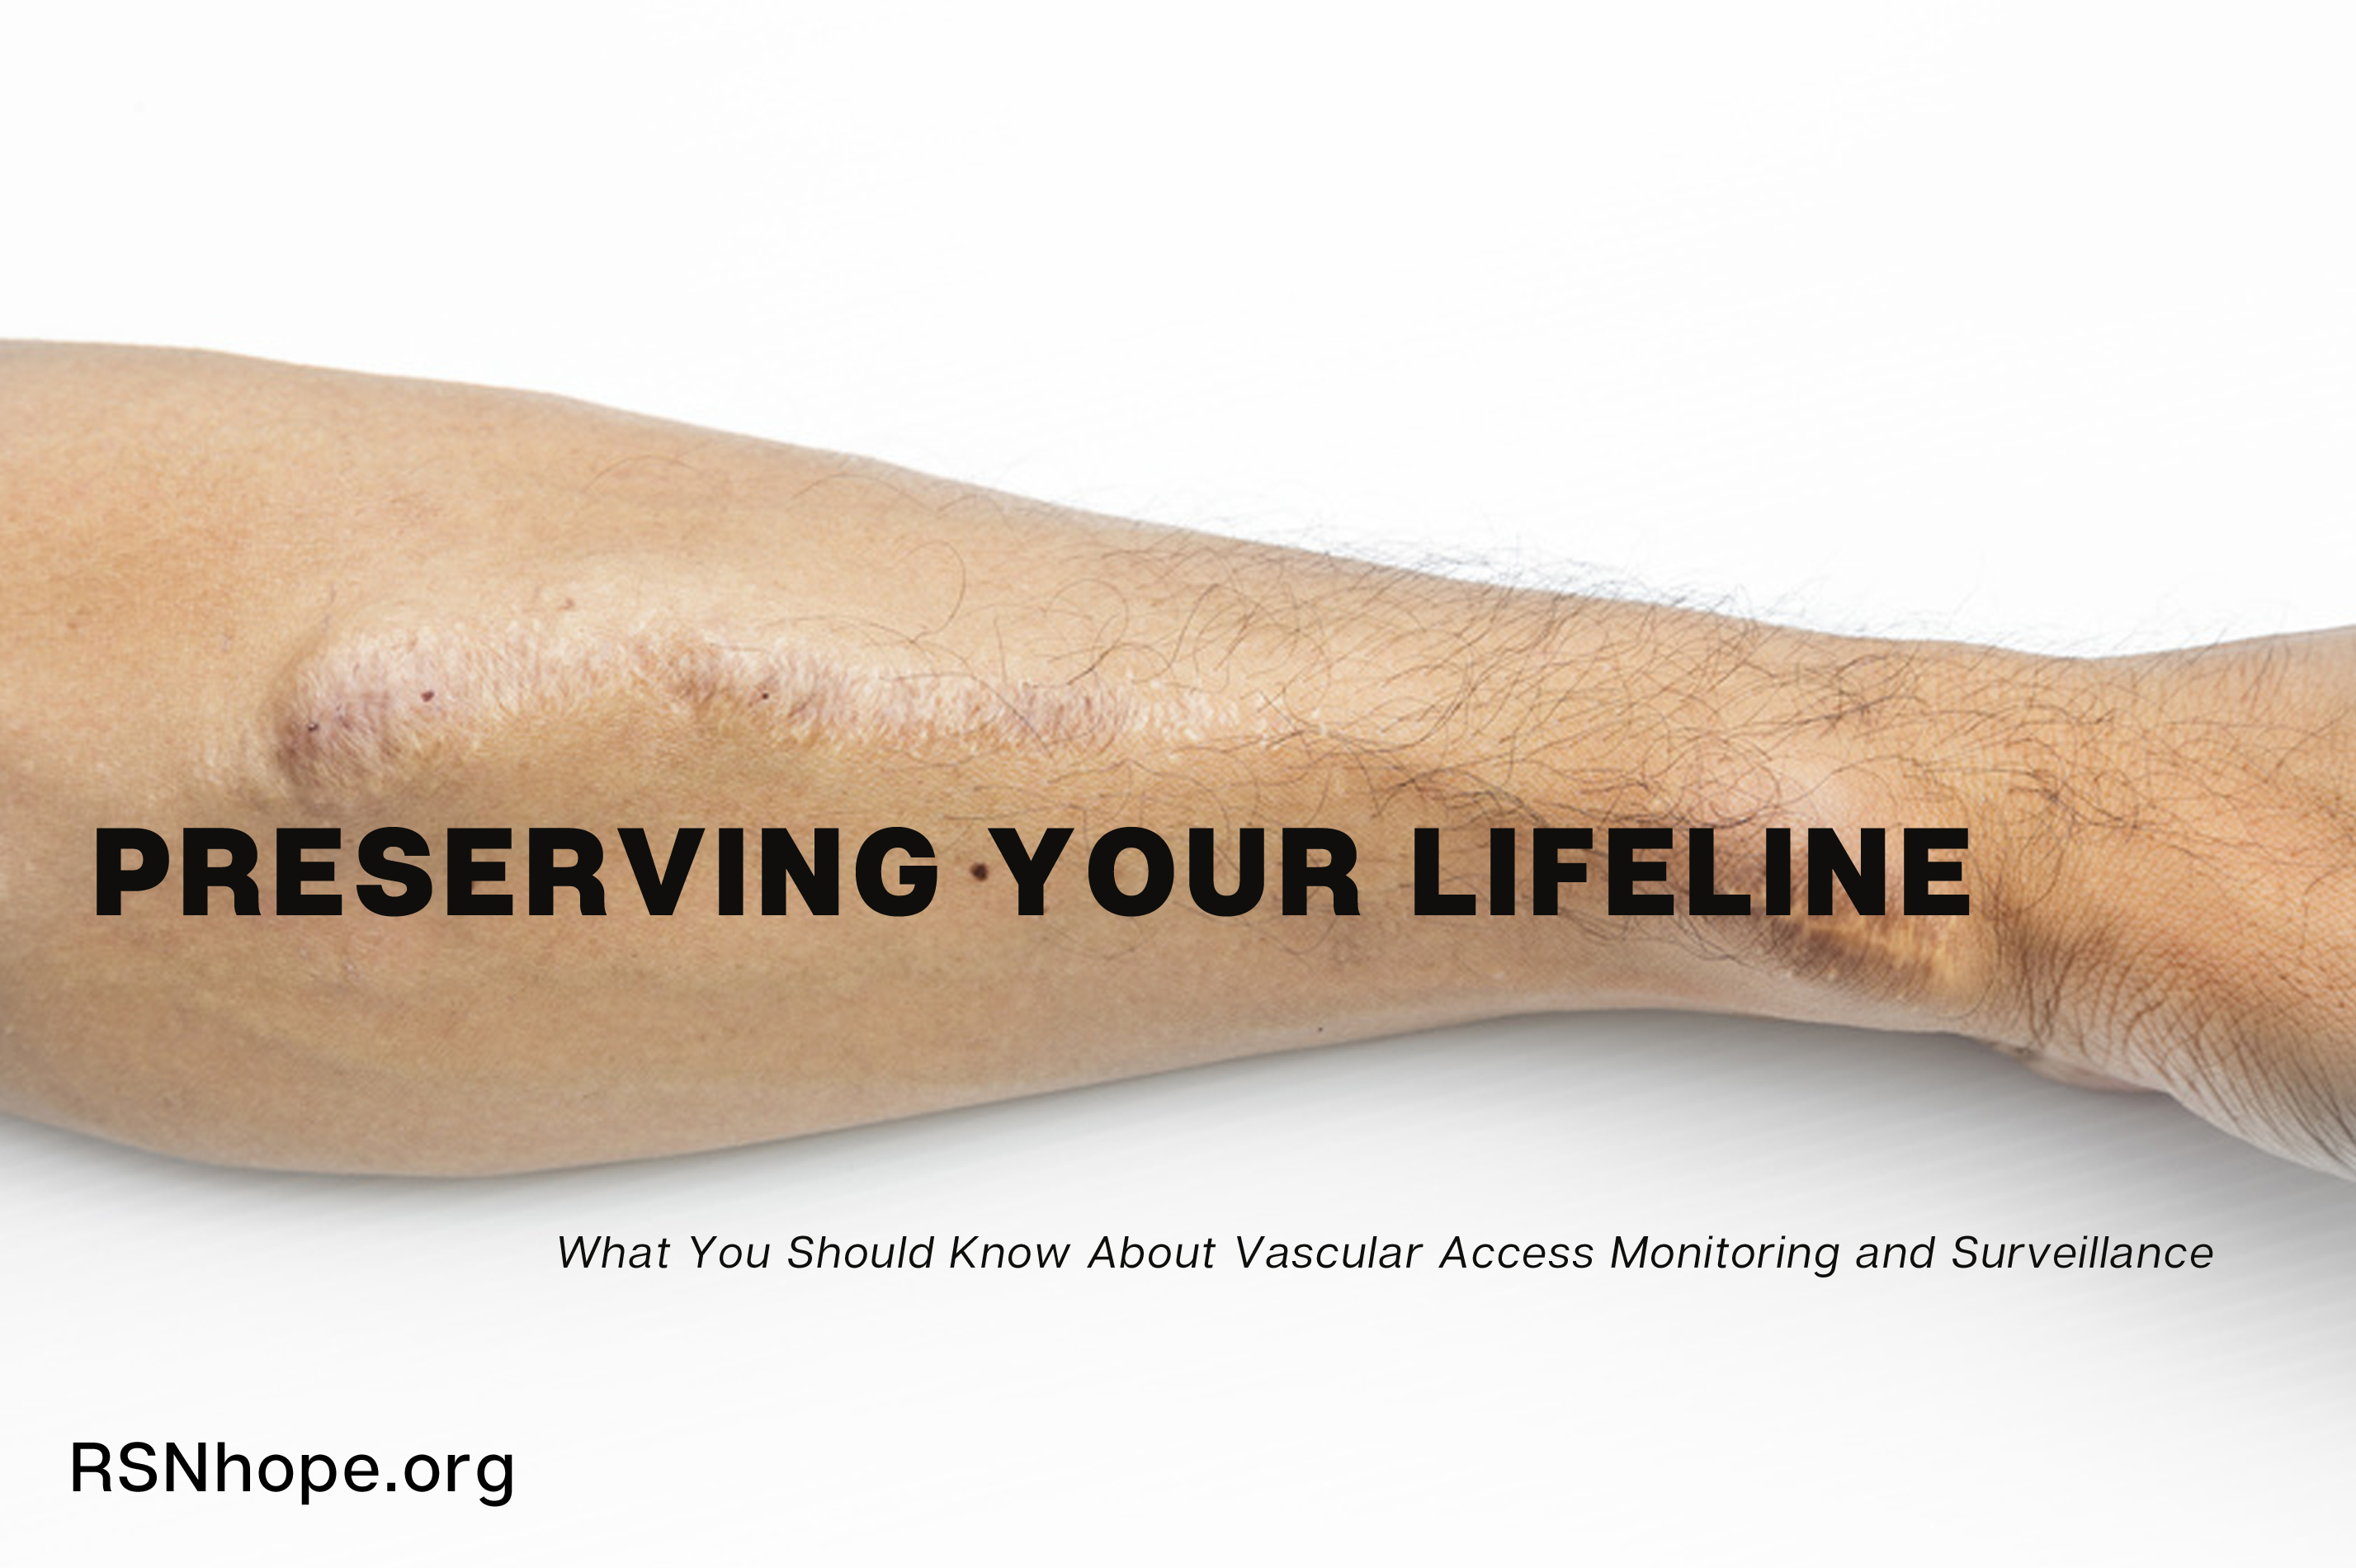 Preserving Your Lifeline What You Should Know About Vascular Access